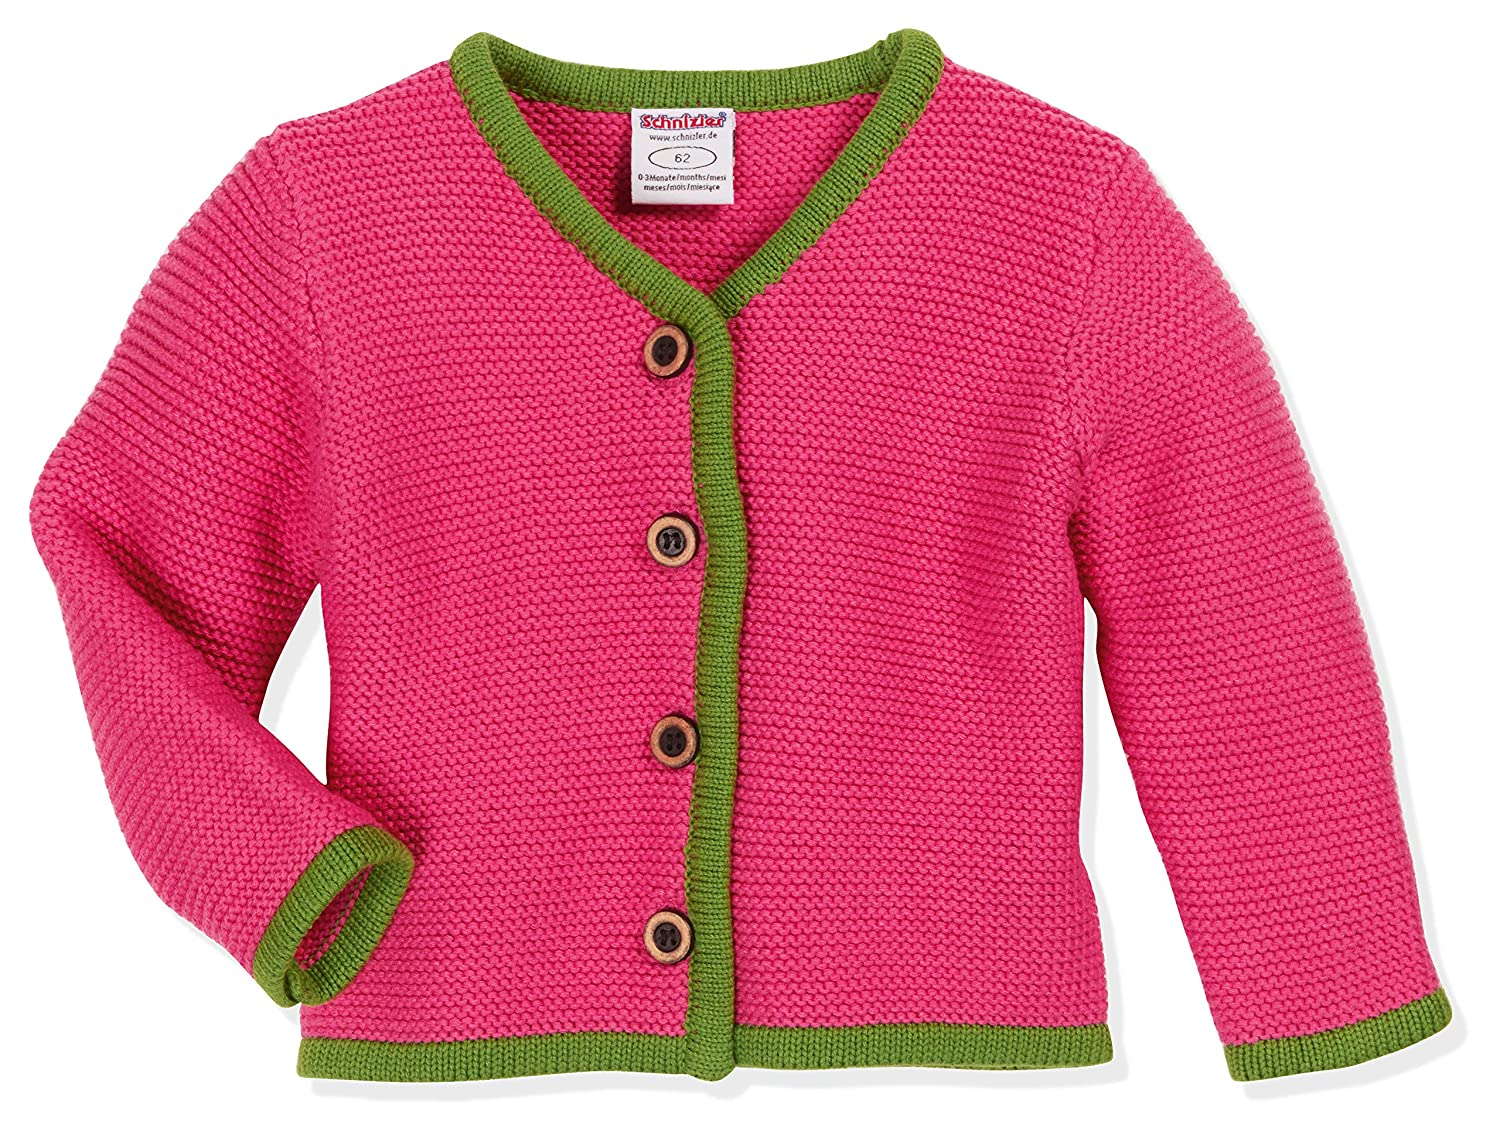 Schnizler Baby Girls Strickjanker Pink Cardigan